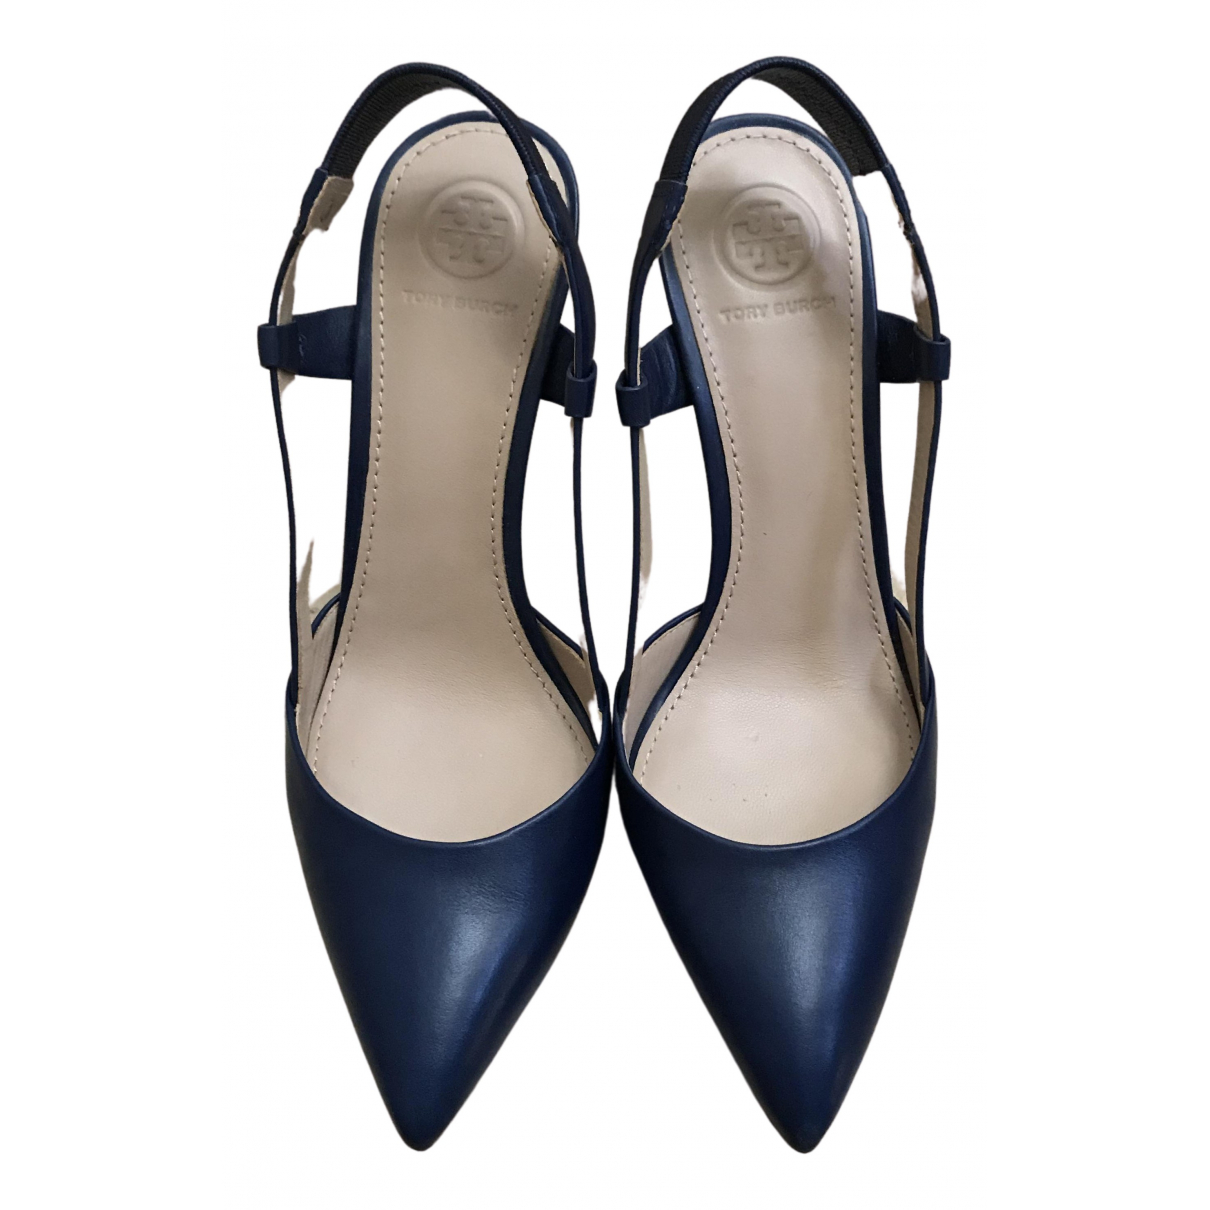 Tory Burch N Navy Leather Heels for Women 6.5 US